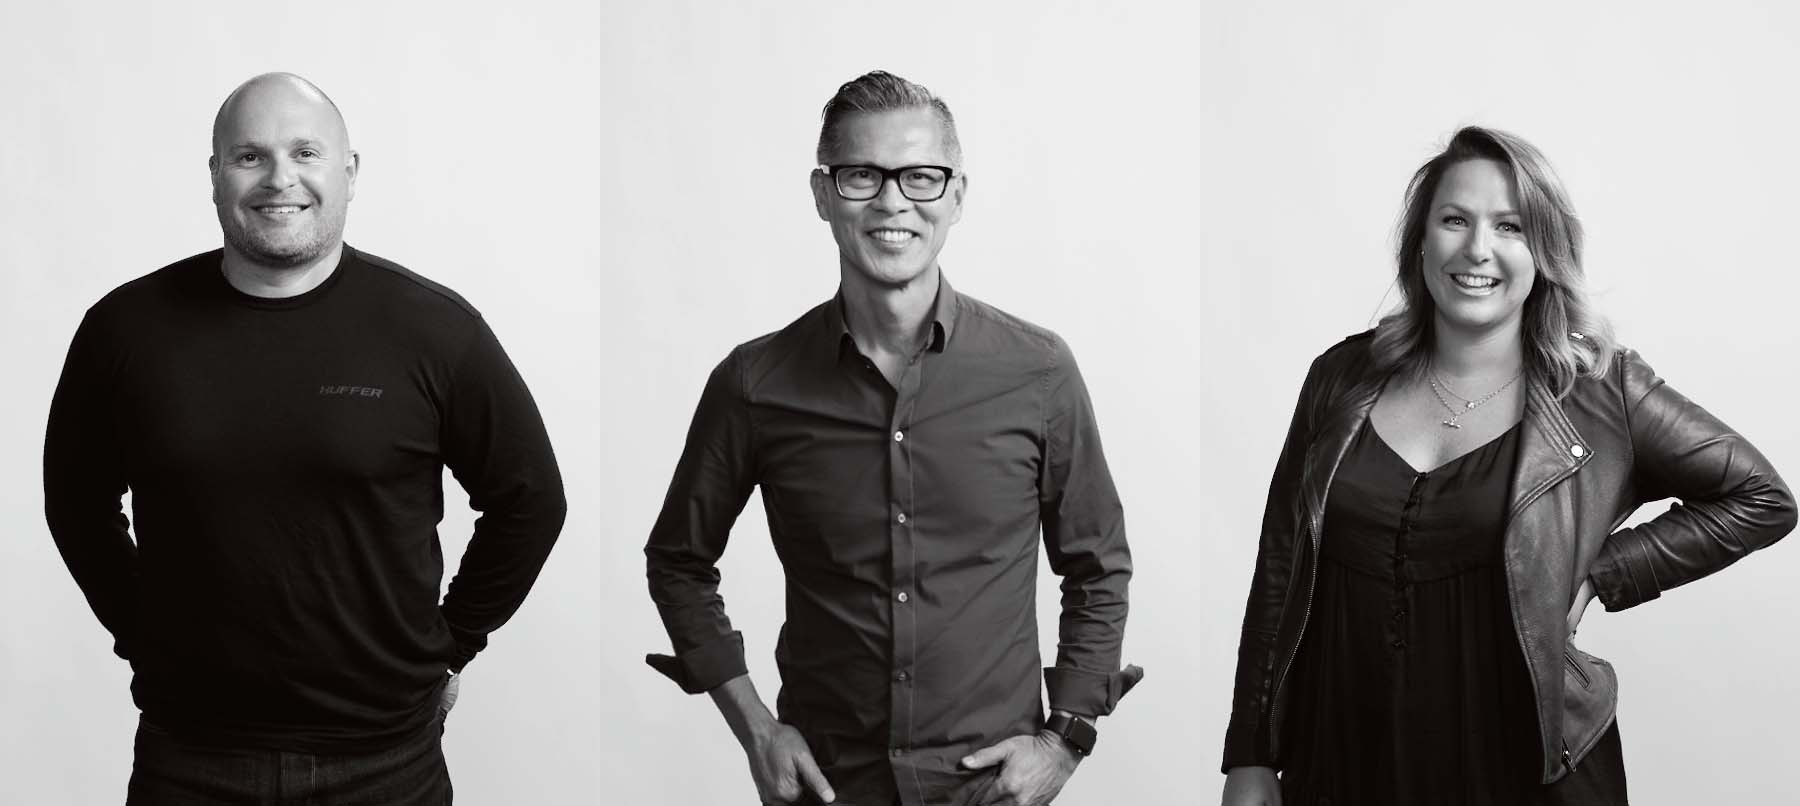 Clemenger Group combines 99, justONE to form Proximity NZ led by Pescott, Mok and Watson